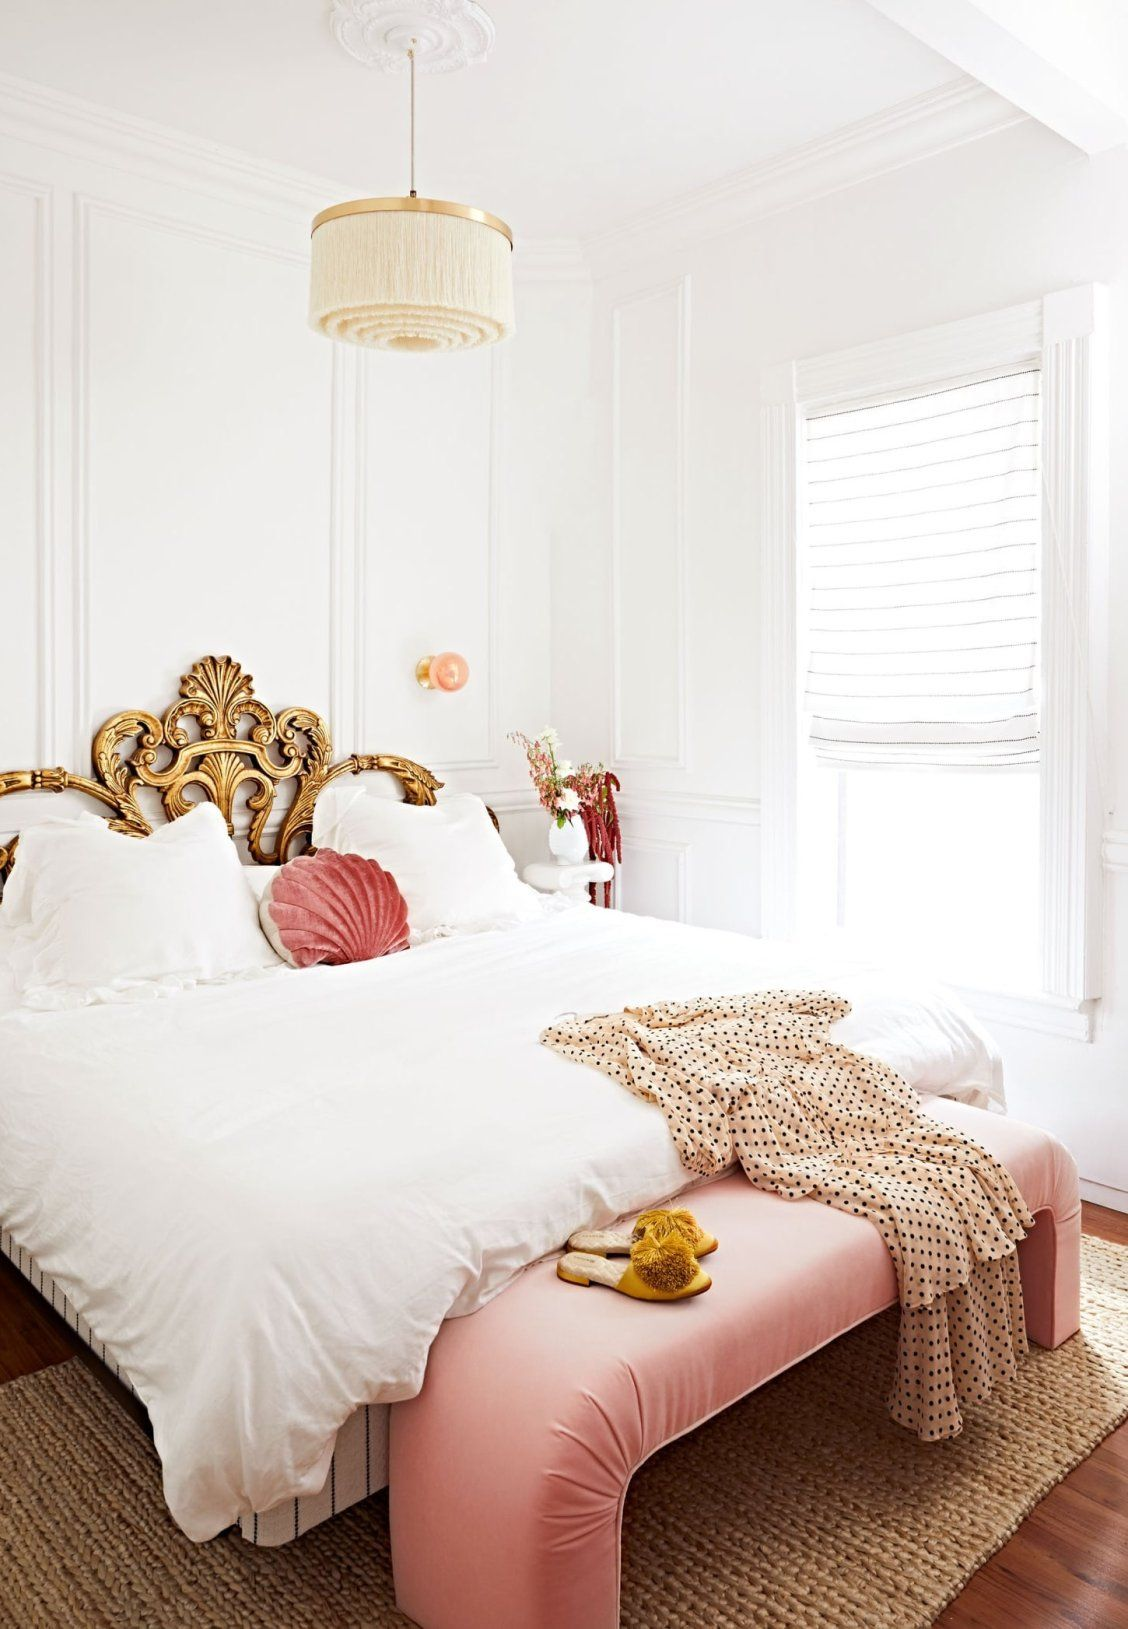 Photo of Before and After: A Rental Bedroom with Luxe, Hotel-Worthy Flair